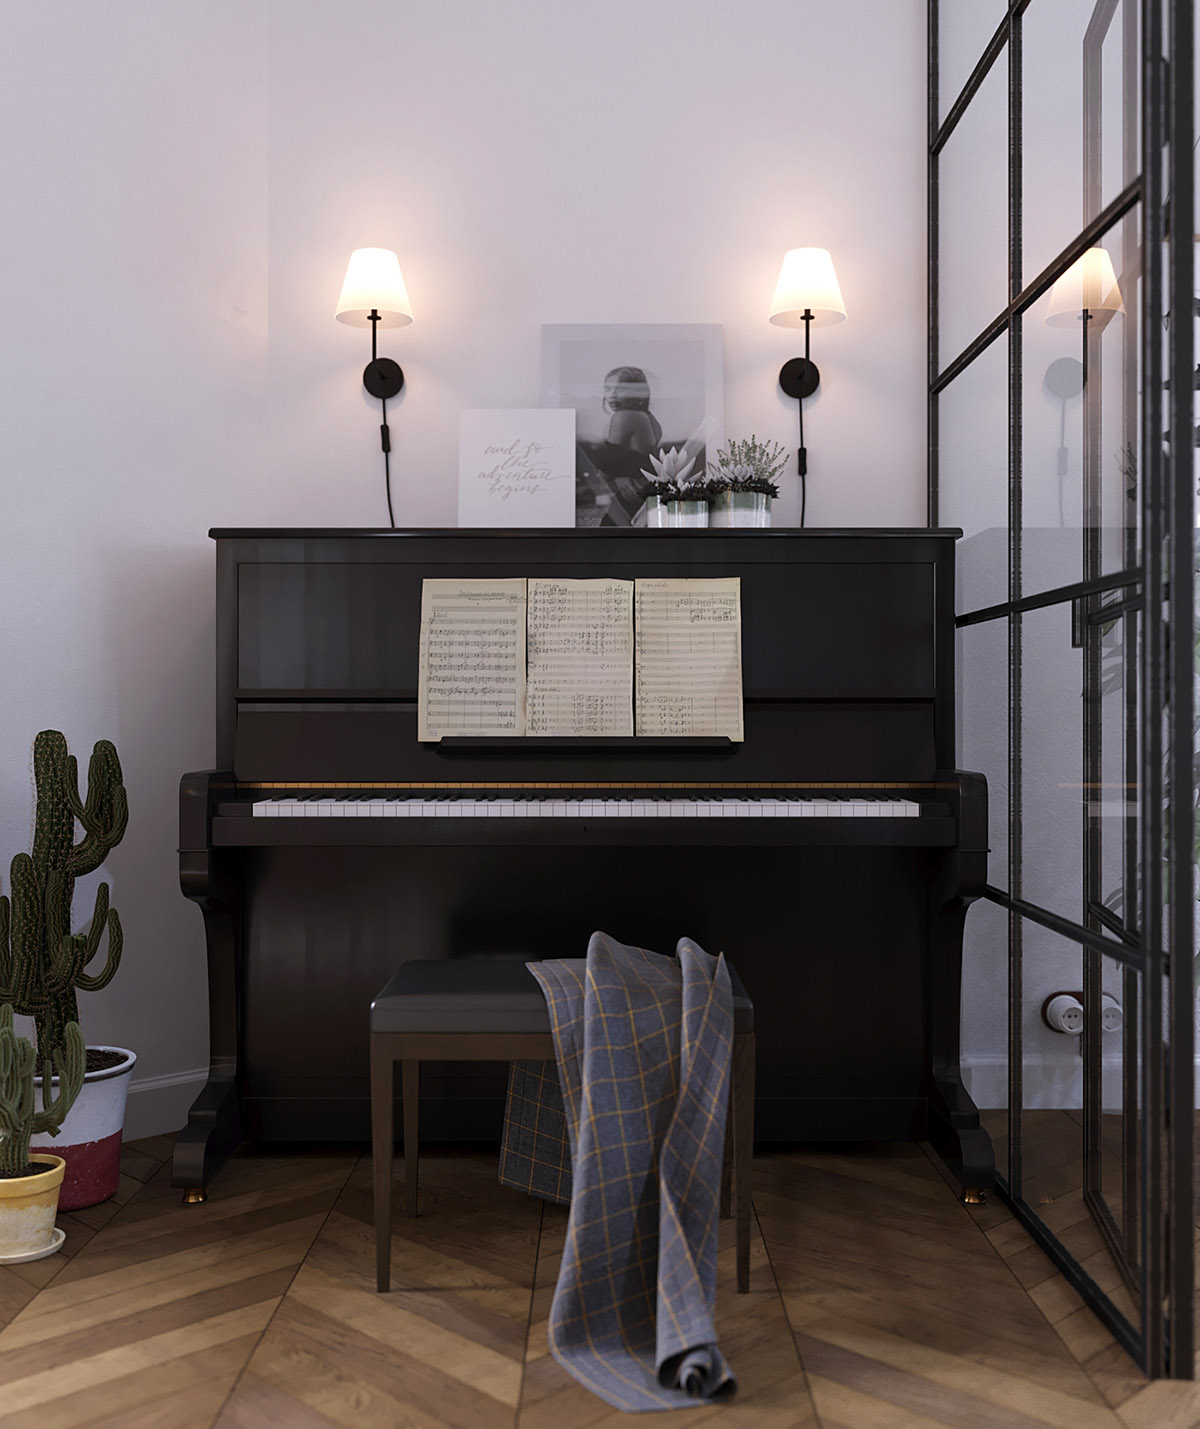 Earthy Eclectic Scandinavian Style Interior images 6